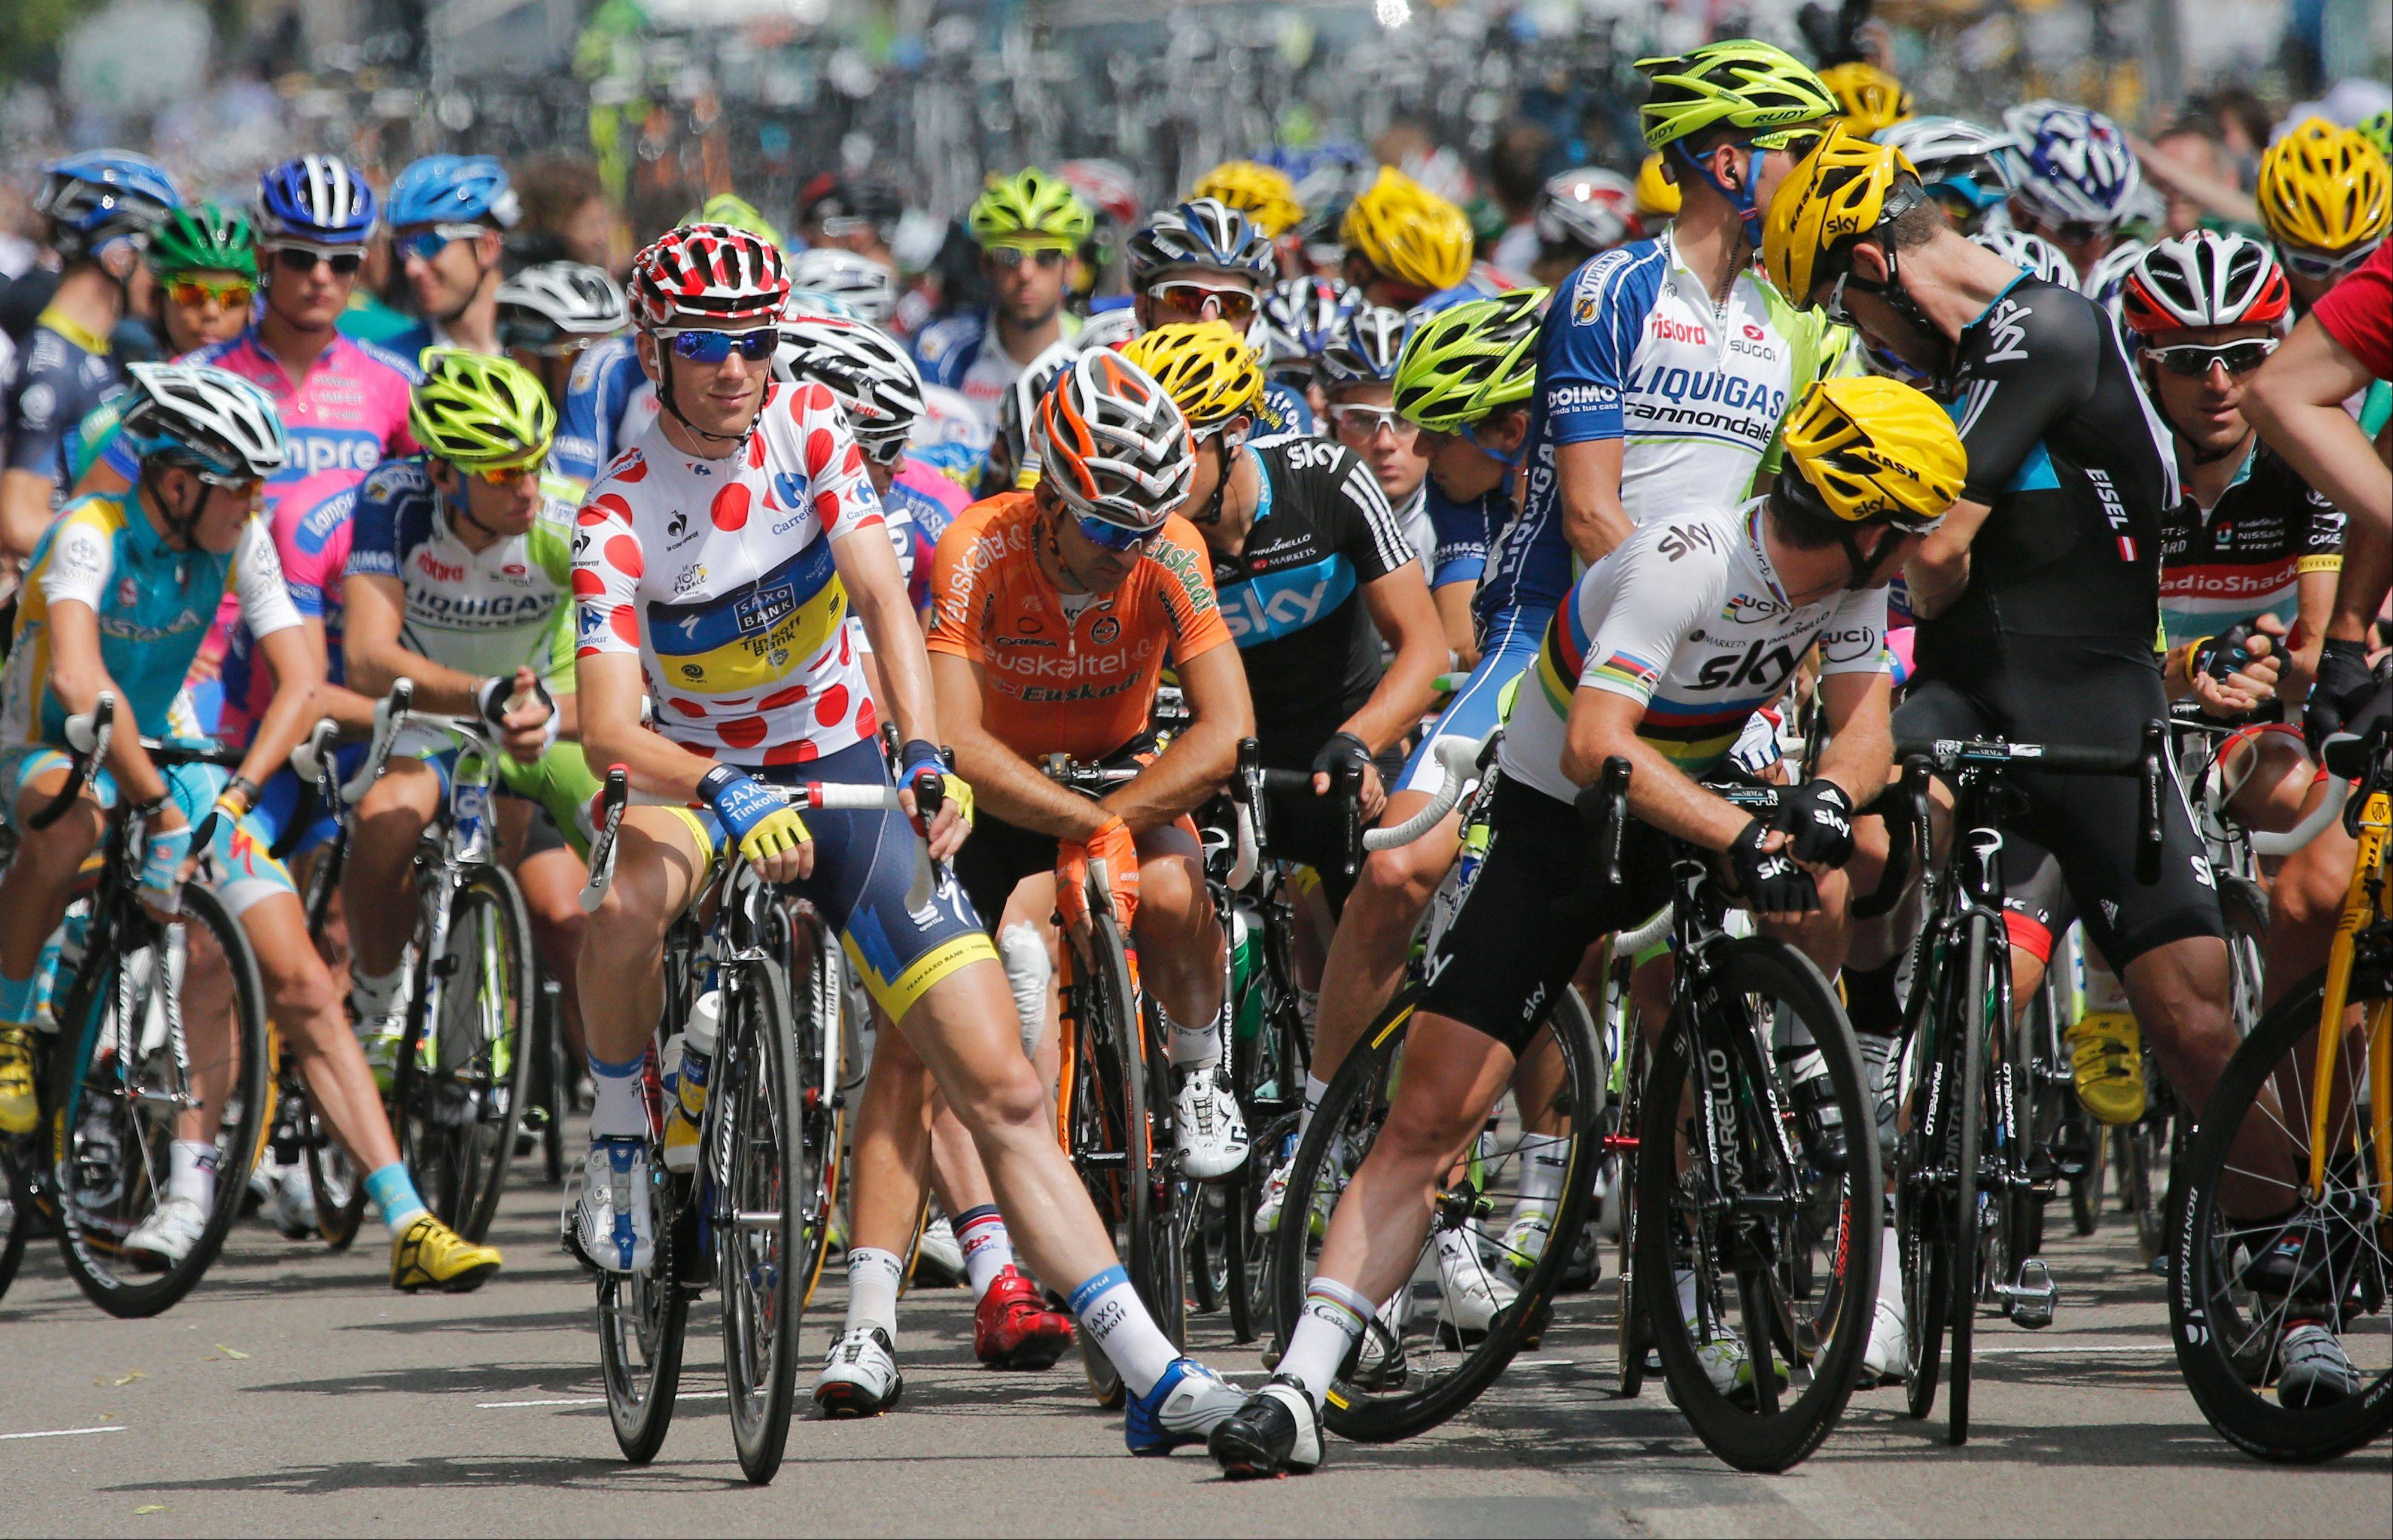 Michael Morkov of Denmark, wearing the best climber�s dotted jersey, left, and Mark Cavendish of Britain, front right in rainbow jersey, wait with other riders for the start of the fourth stage of the Tour de France cycling race over 214.5 kilometers (133.3 miles) with start in Abbeville and finish in Rouen, France, Wednesday July 4, 2012.